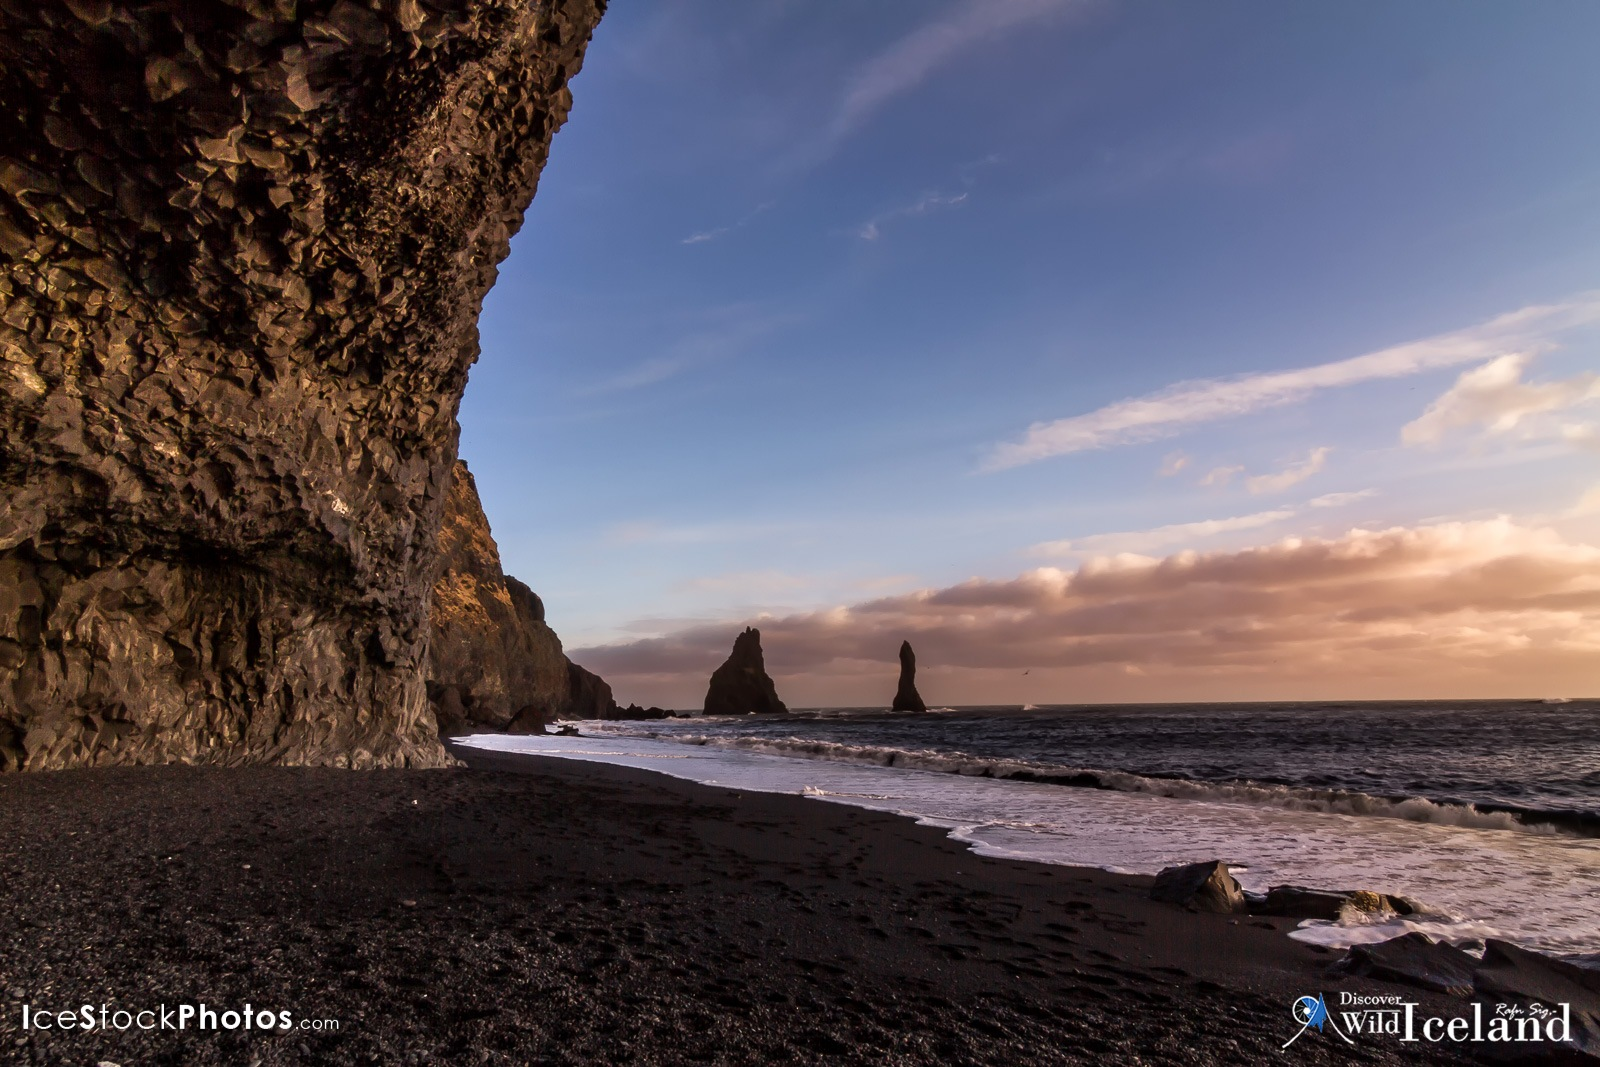 Discover Wild Iceland .is - Reynisdrangar in the black beach of Reynisfjara -  #Iceland by Rafn Sig,-  @ Discover Wild Iceland.com